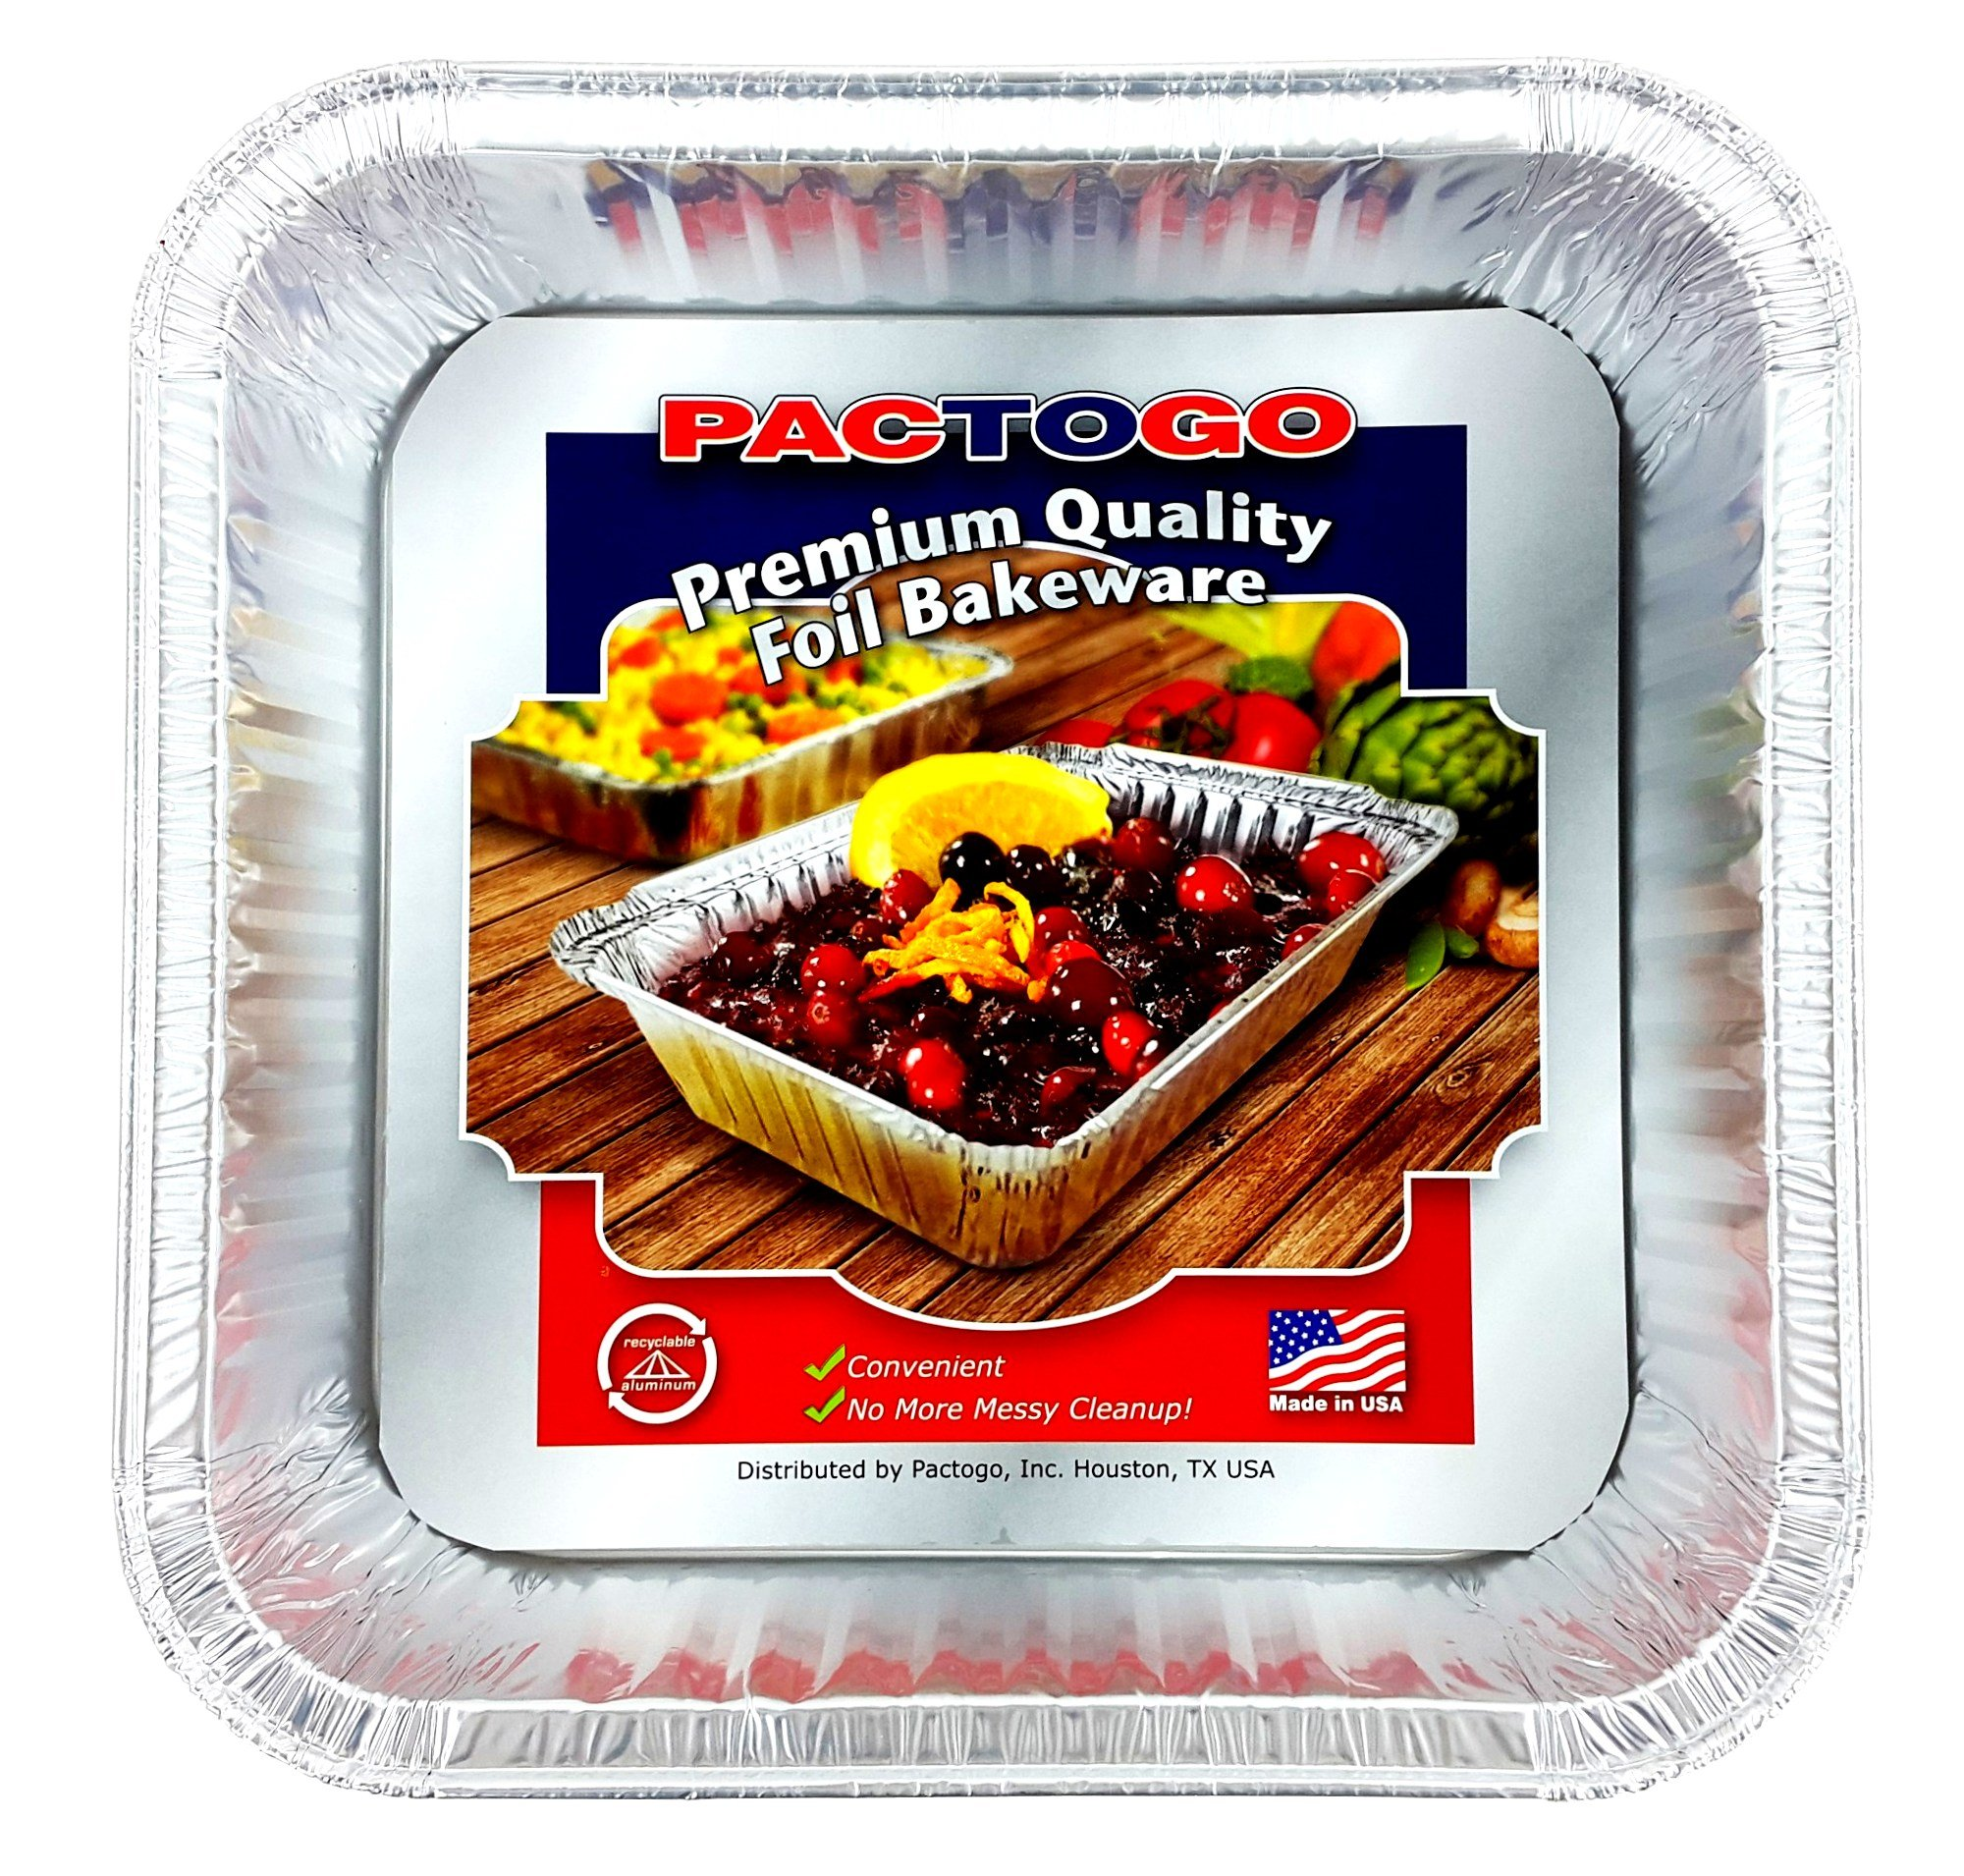 Pactogo Red Holiday Christmas Square Cake Aluminum Foil Pan w/Clear Dome Lid Disposable Baking Tins (Pack of 25 Sets) by PACTOGO (Image #2)